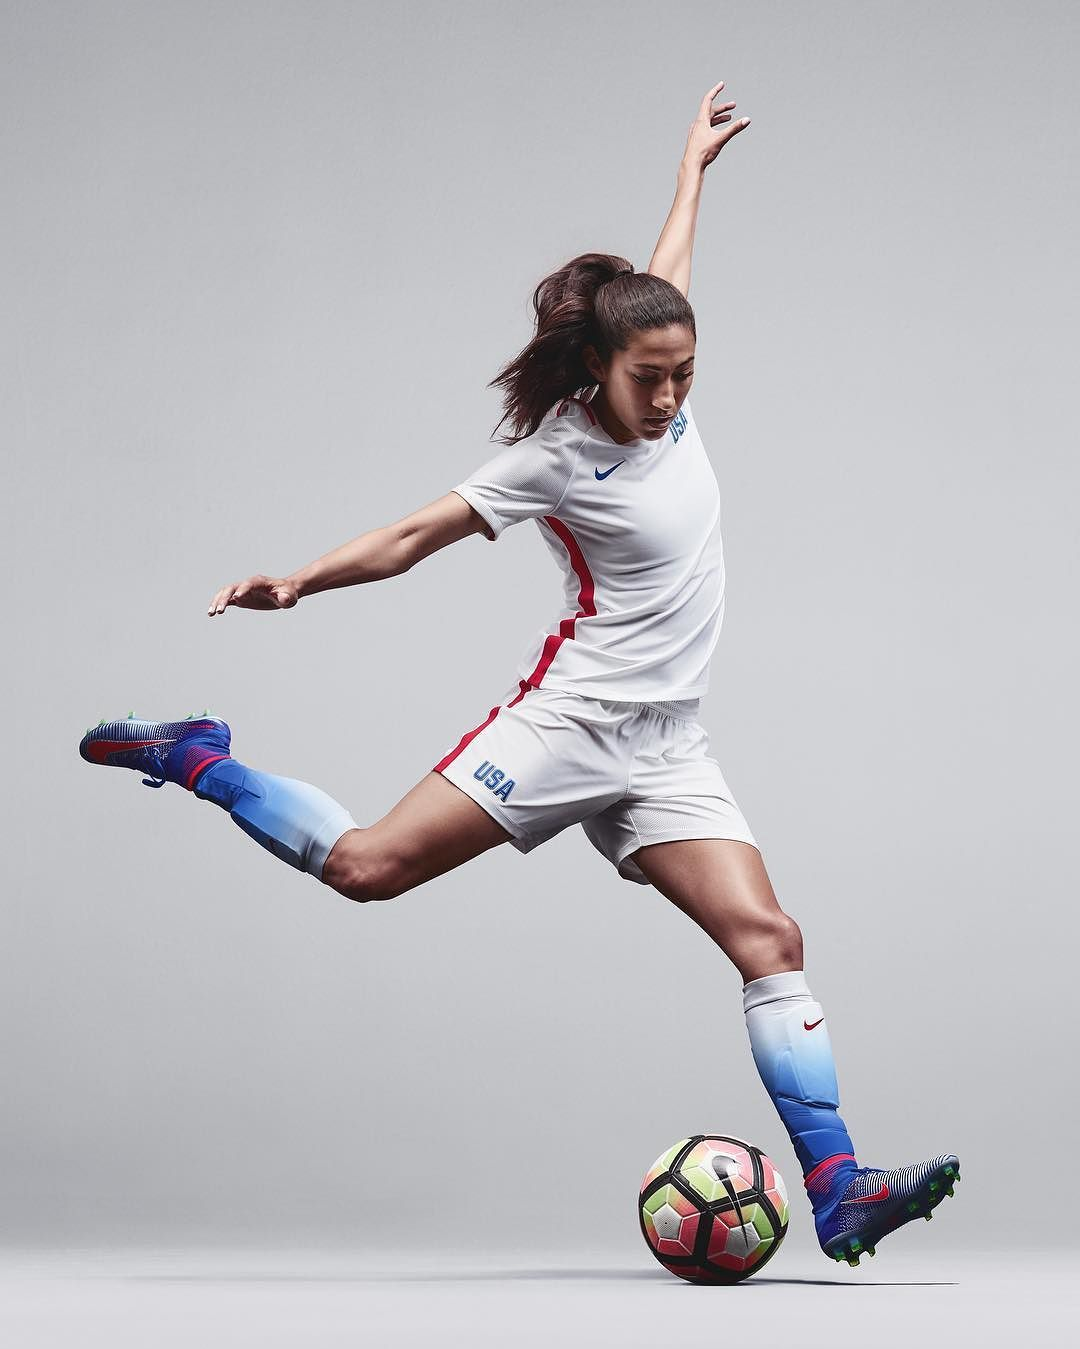 Ready Set Go Christenpress And The Uswnt S New Jersey From Nikefootball Available Now At The Link In T Soccer Poses Soccer Photography Usa Soccer Women